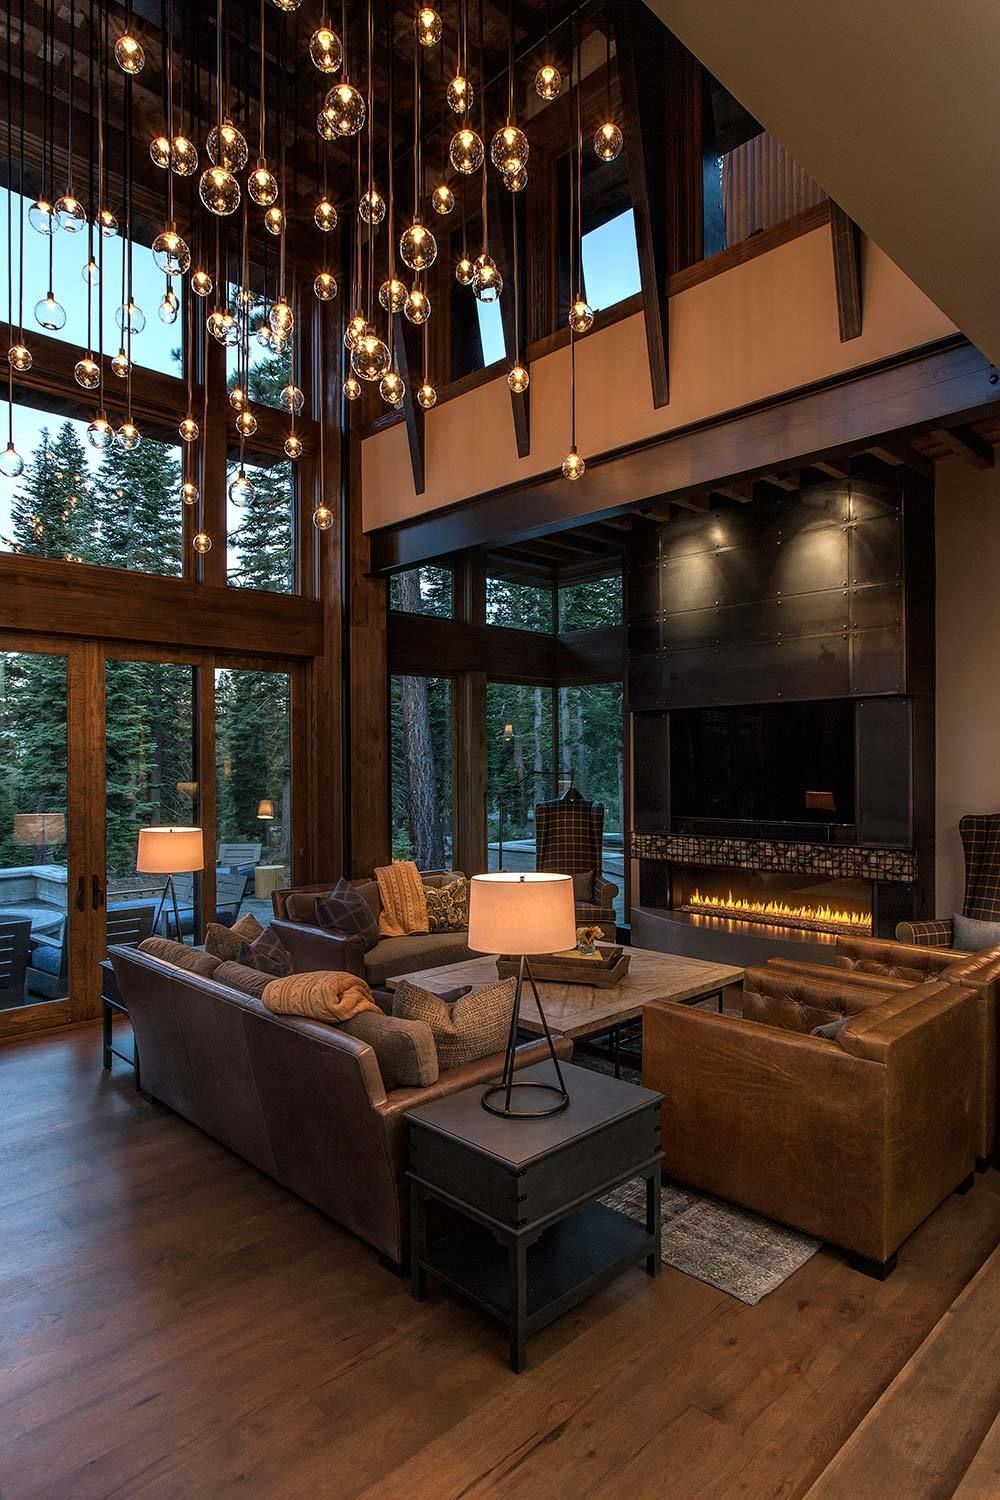 Lake Tahoe Getaway Features Contemporary Barn Aesthetic Ideal